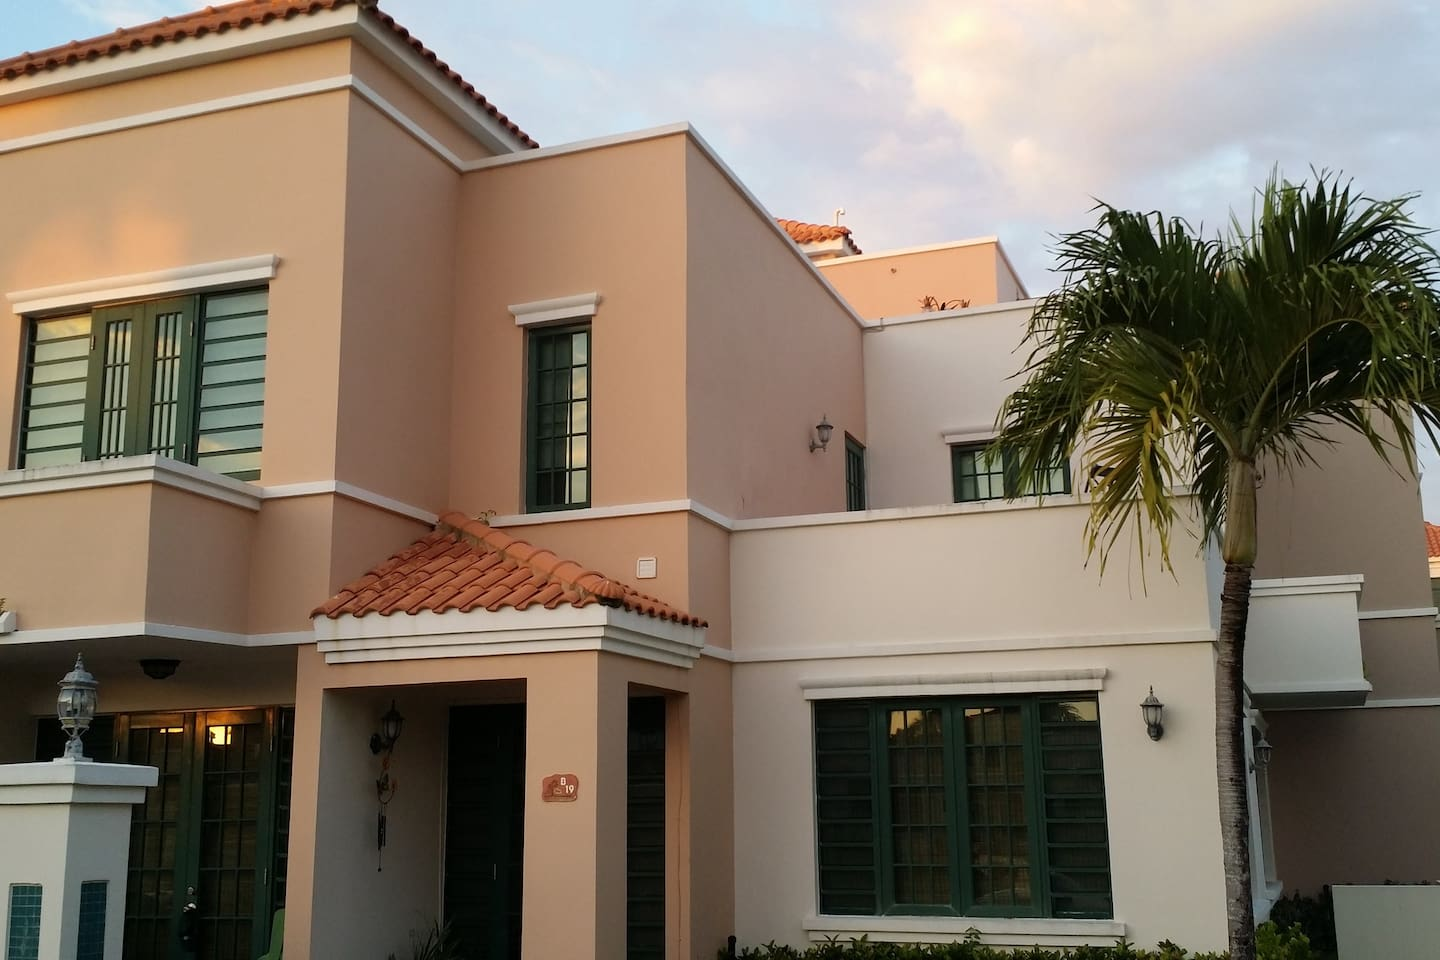 2 Story Villa featuring 2 br 2.5 bath room